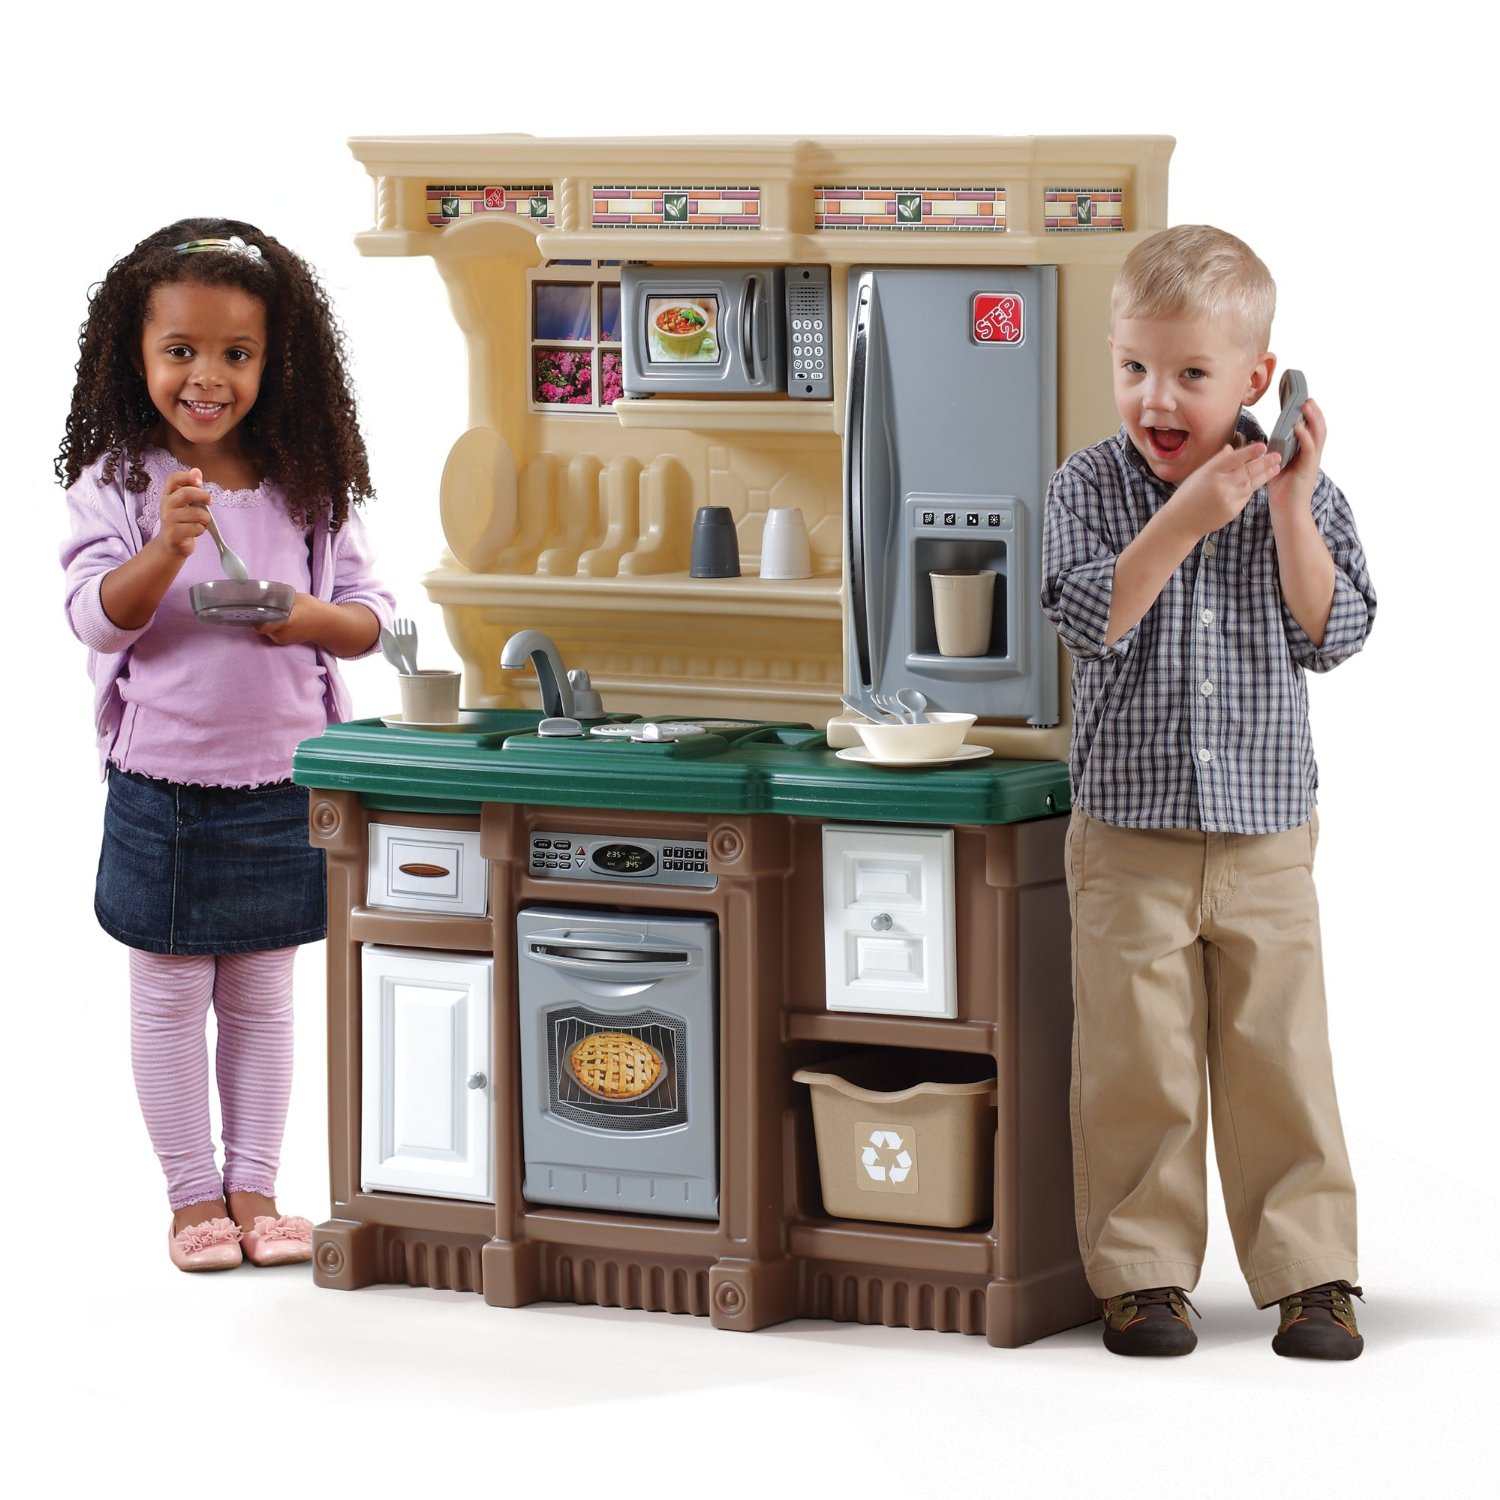 Stainless Steel Kitchen Set Toy